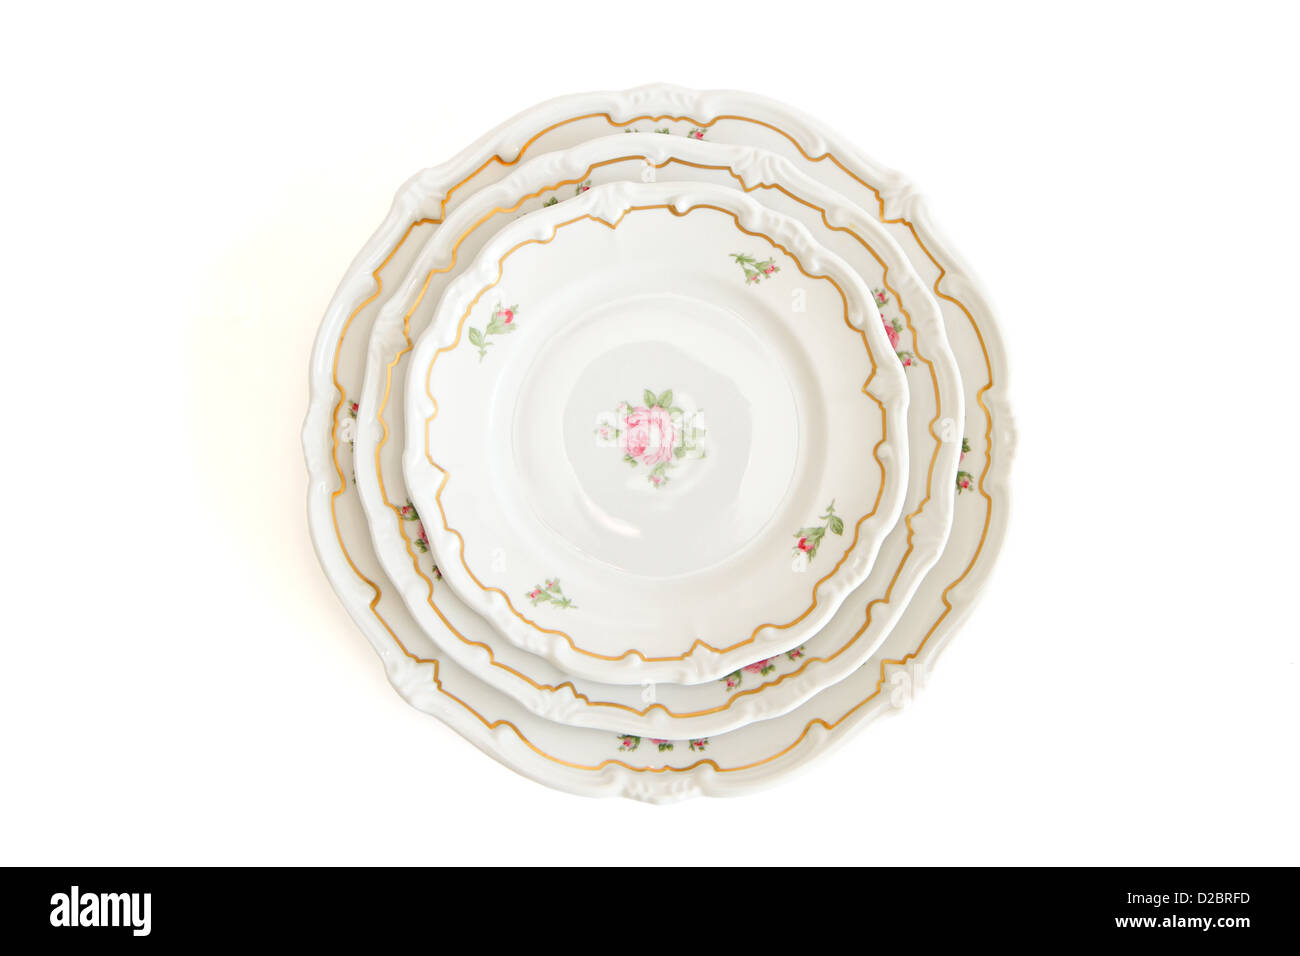 Stack of three white dinner plates and saucers with flowers and wavy rim top view isolated - Stock Image